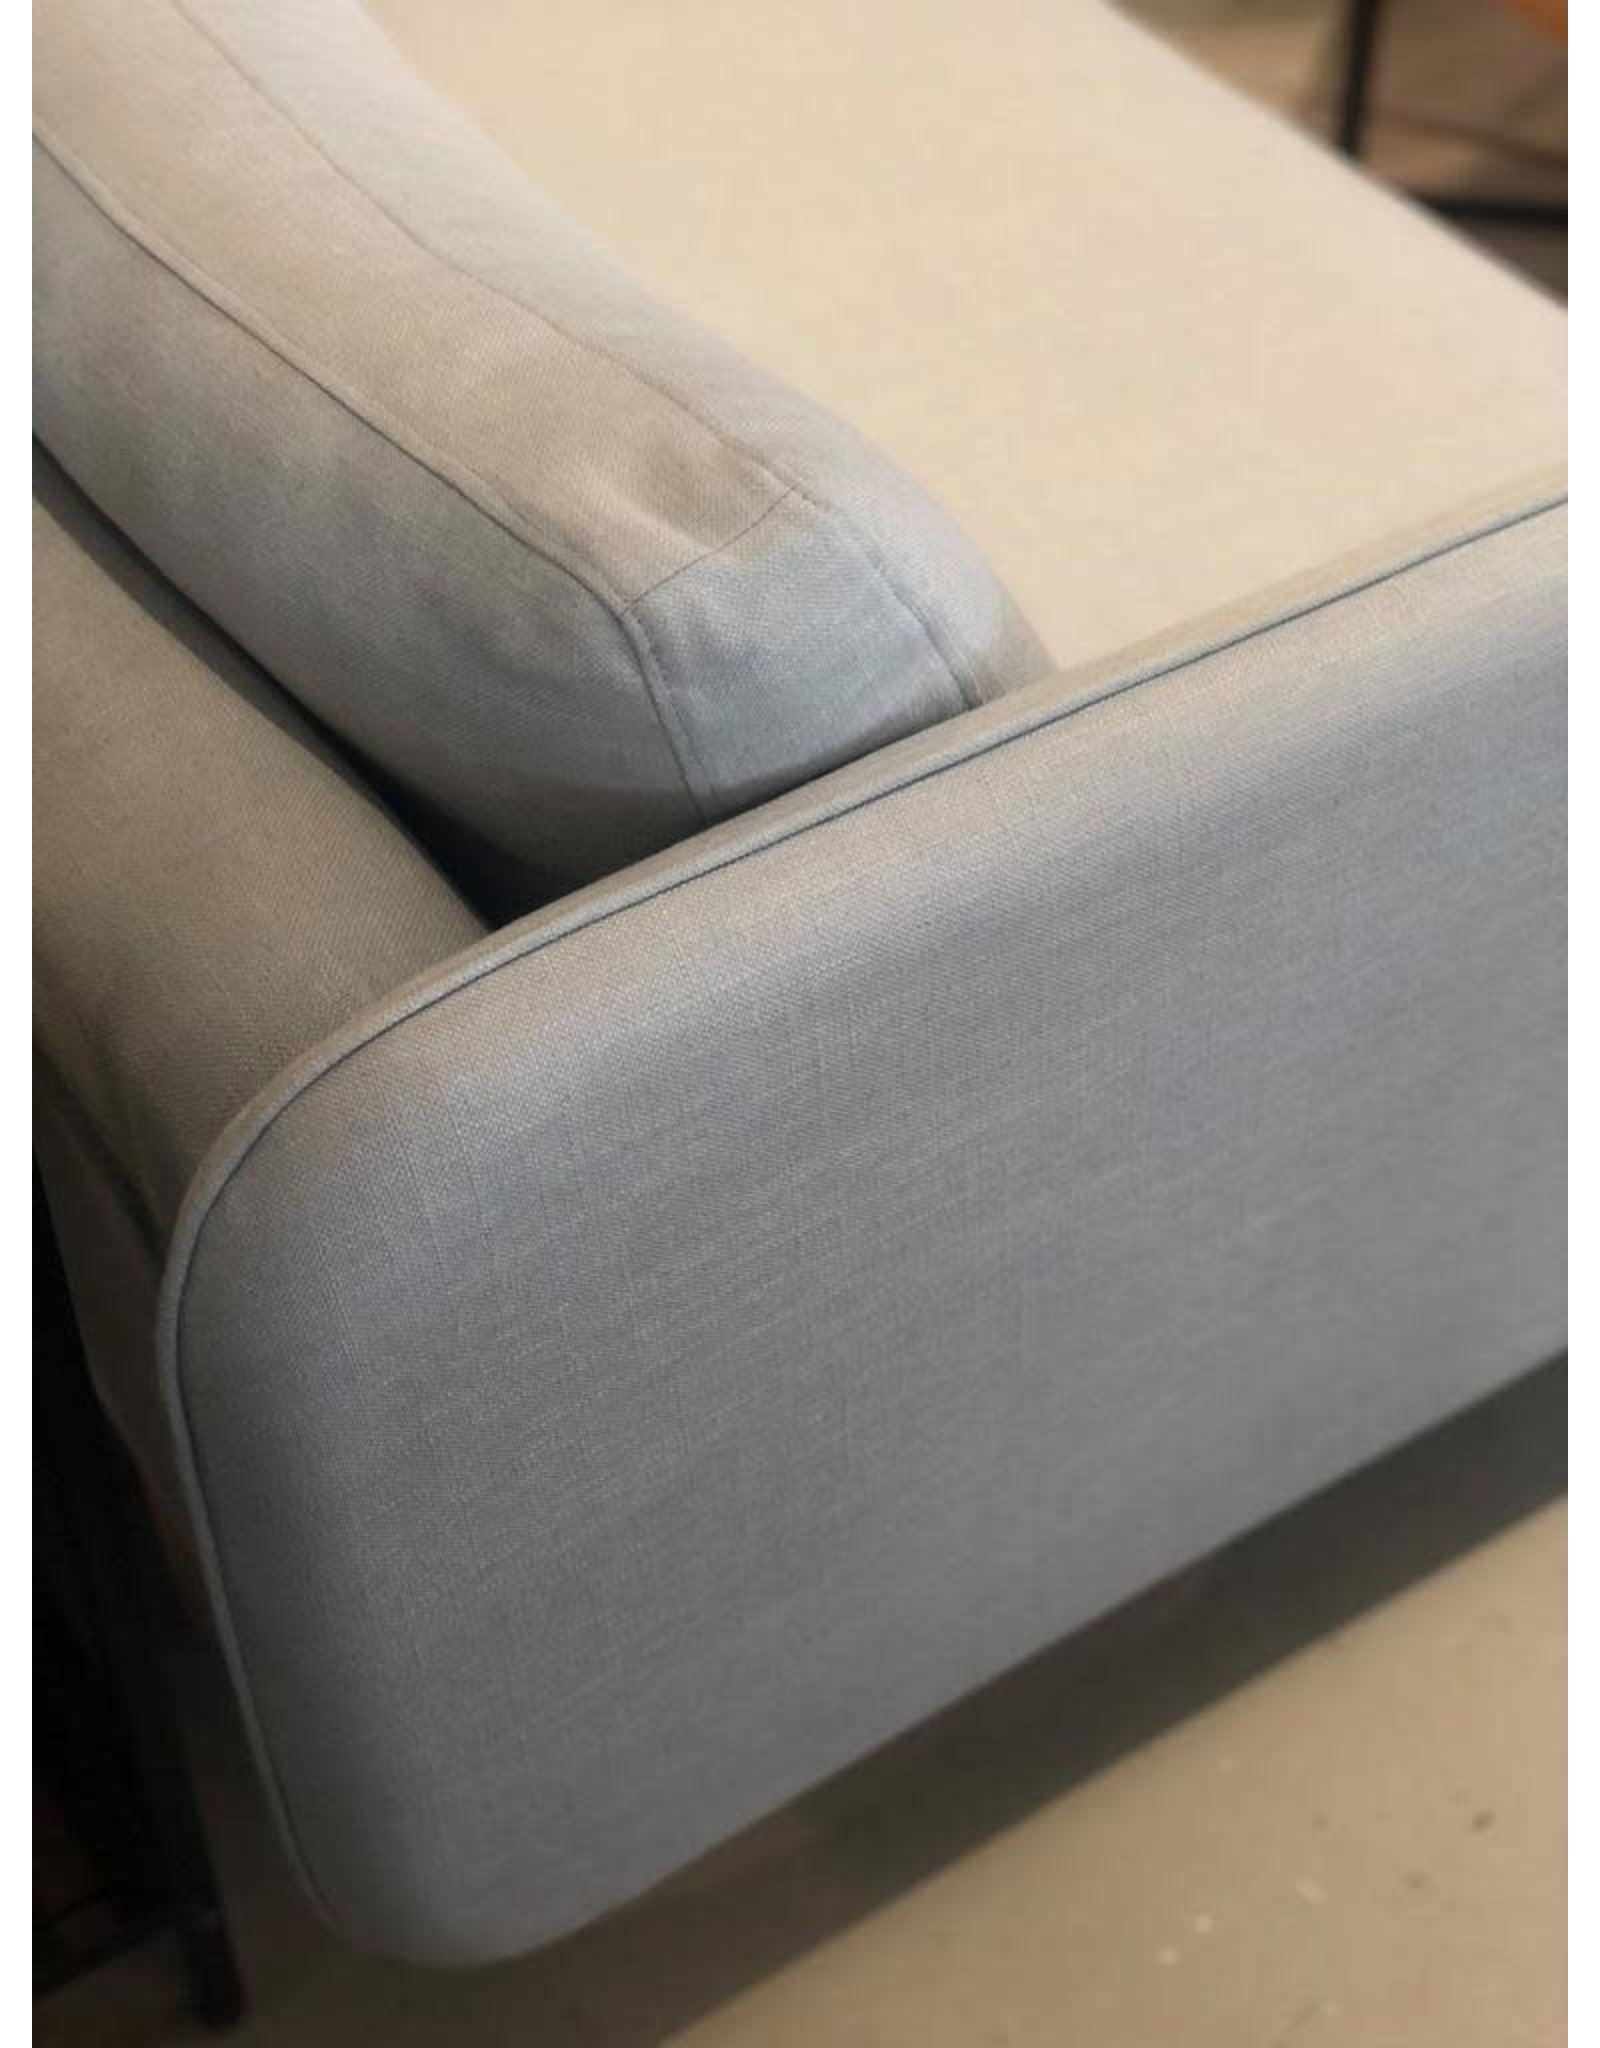 WON DESIGN 3 SEATER HOLD SOFA IN ICE BLUE DIEGO#73